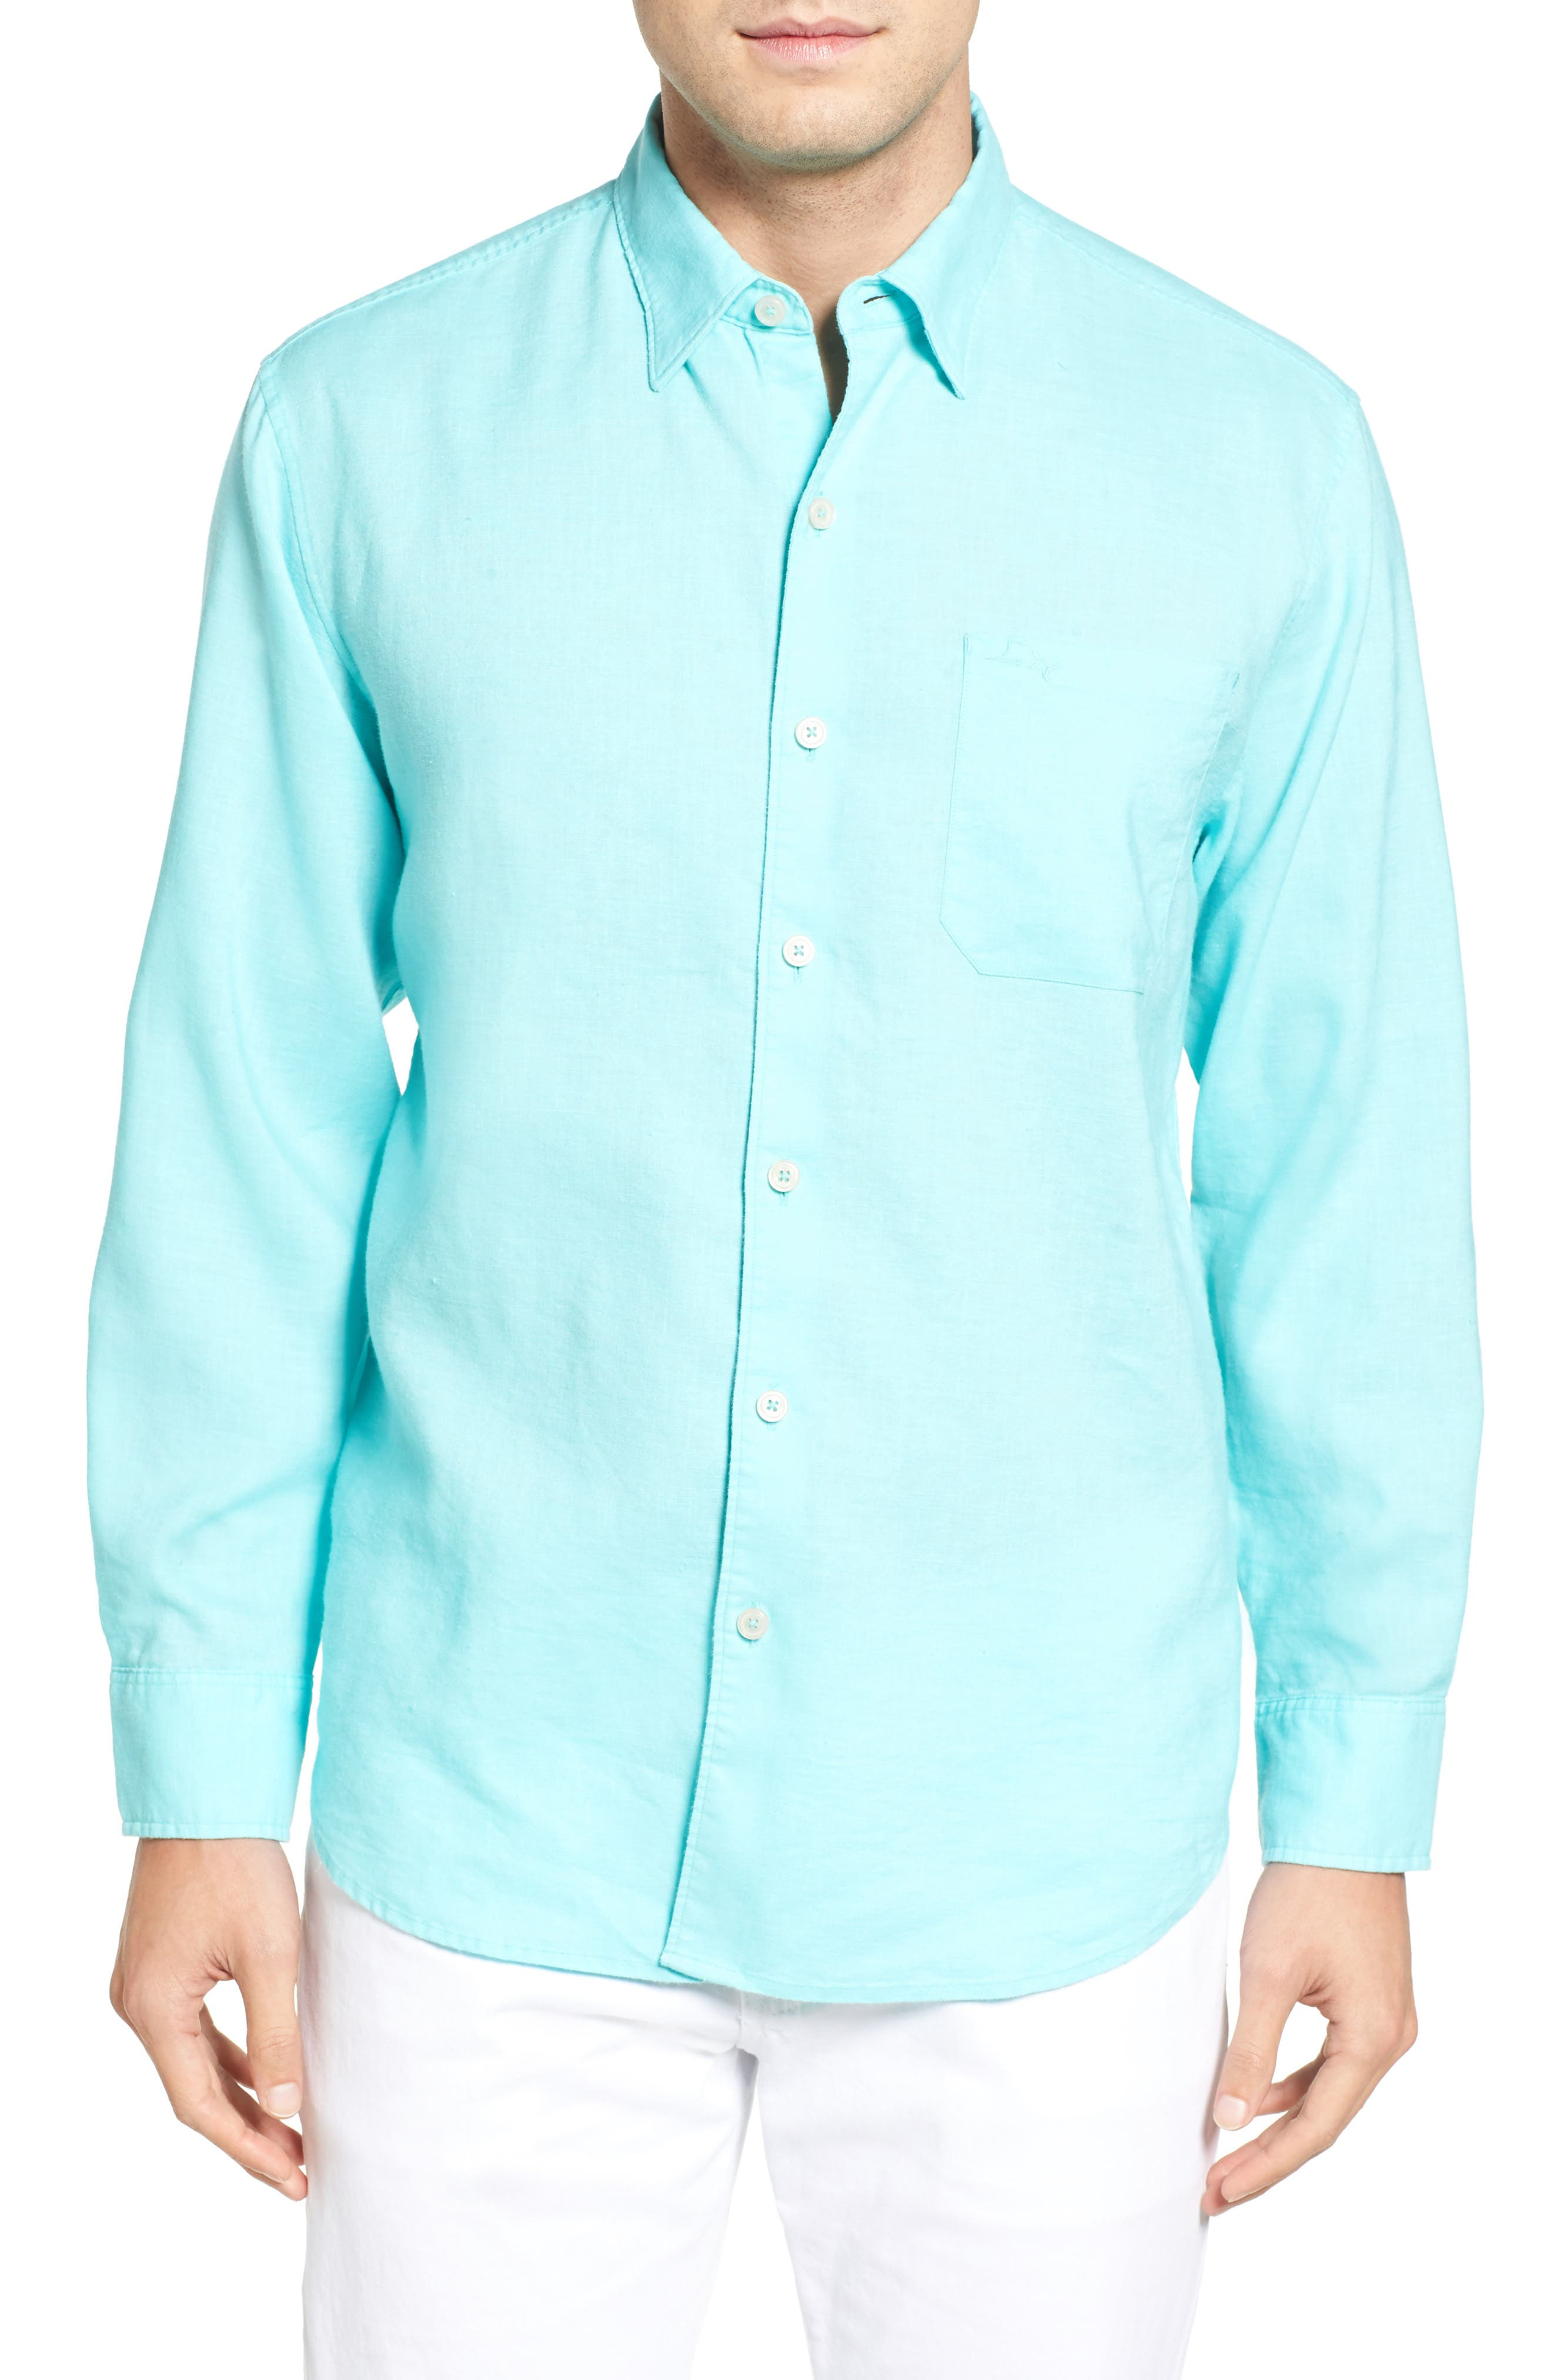 Tommy Bahama Monaco Tides Linen Blend Sport Shirt (Big & Tall)